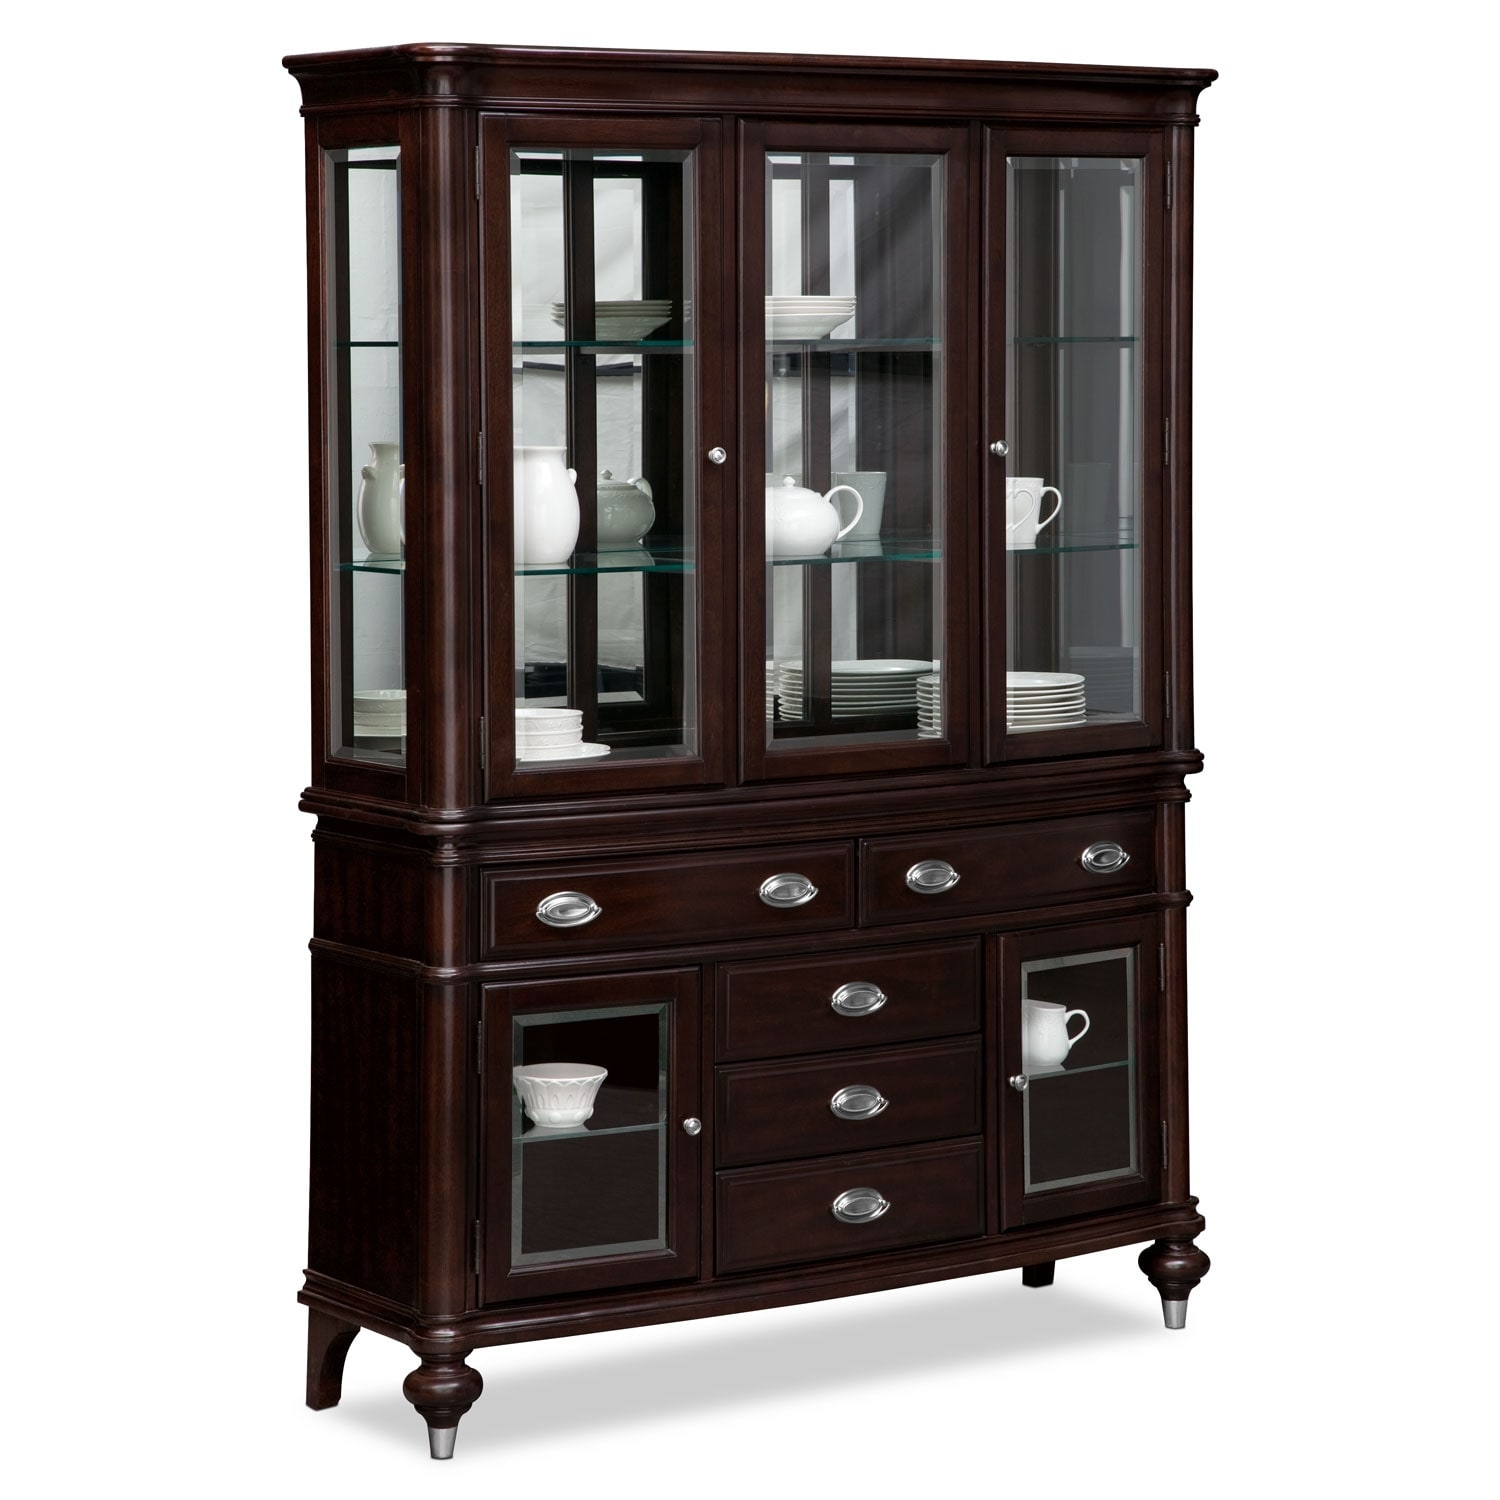 Dining Room Buffet Hutch: Esquire Buffet And Hutch